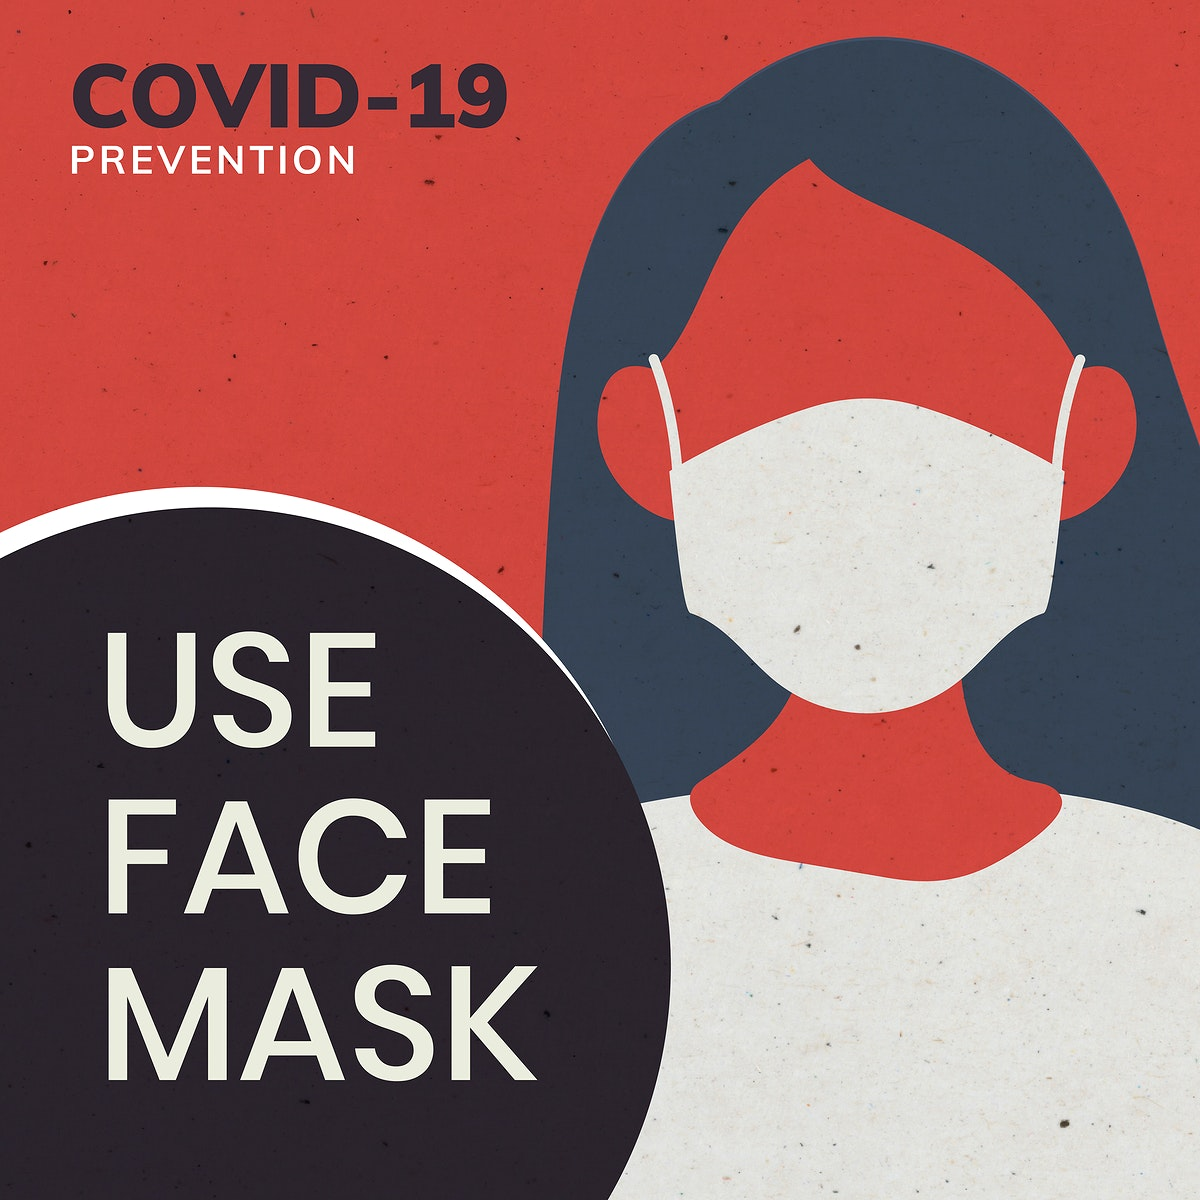 Covid-19 prevention use face mask social ad vector